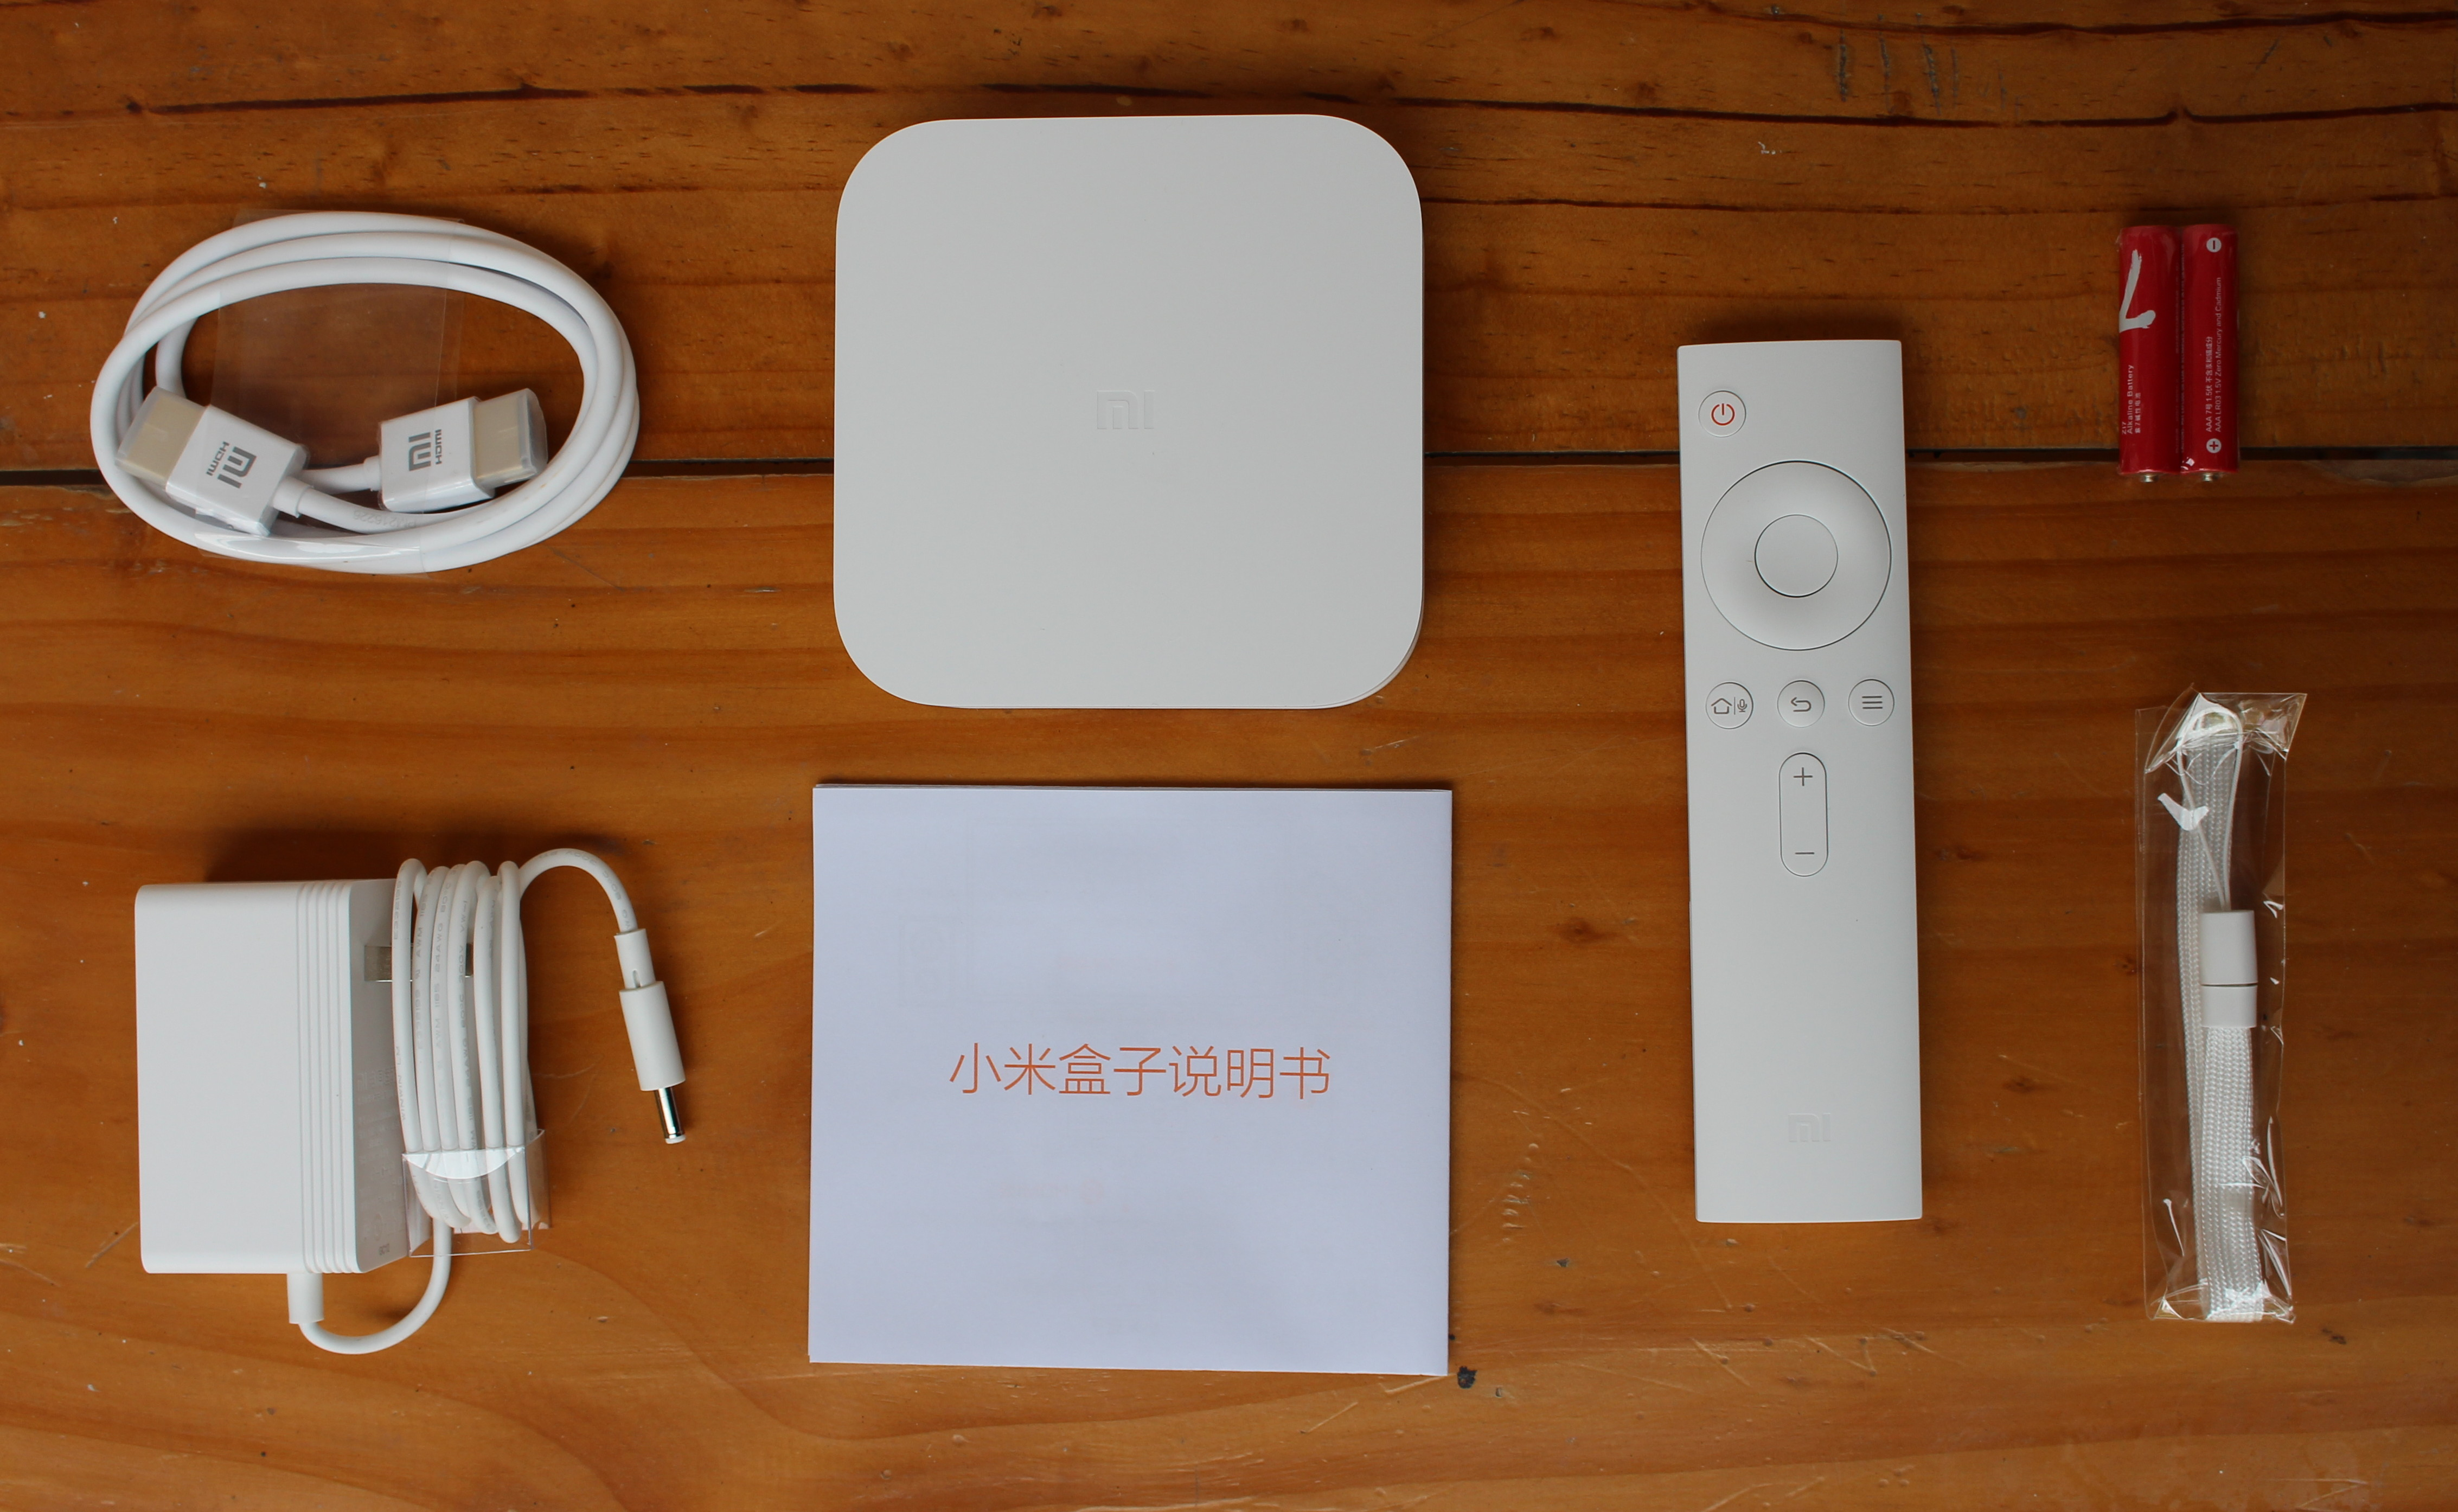 xiaomi mi box 3 enhanced unboxing and teardown. Black Bedroom Furniture Sets. Home Design Ideas